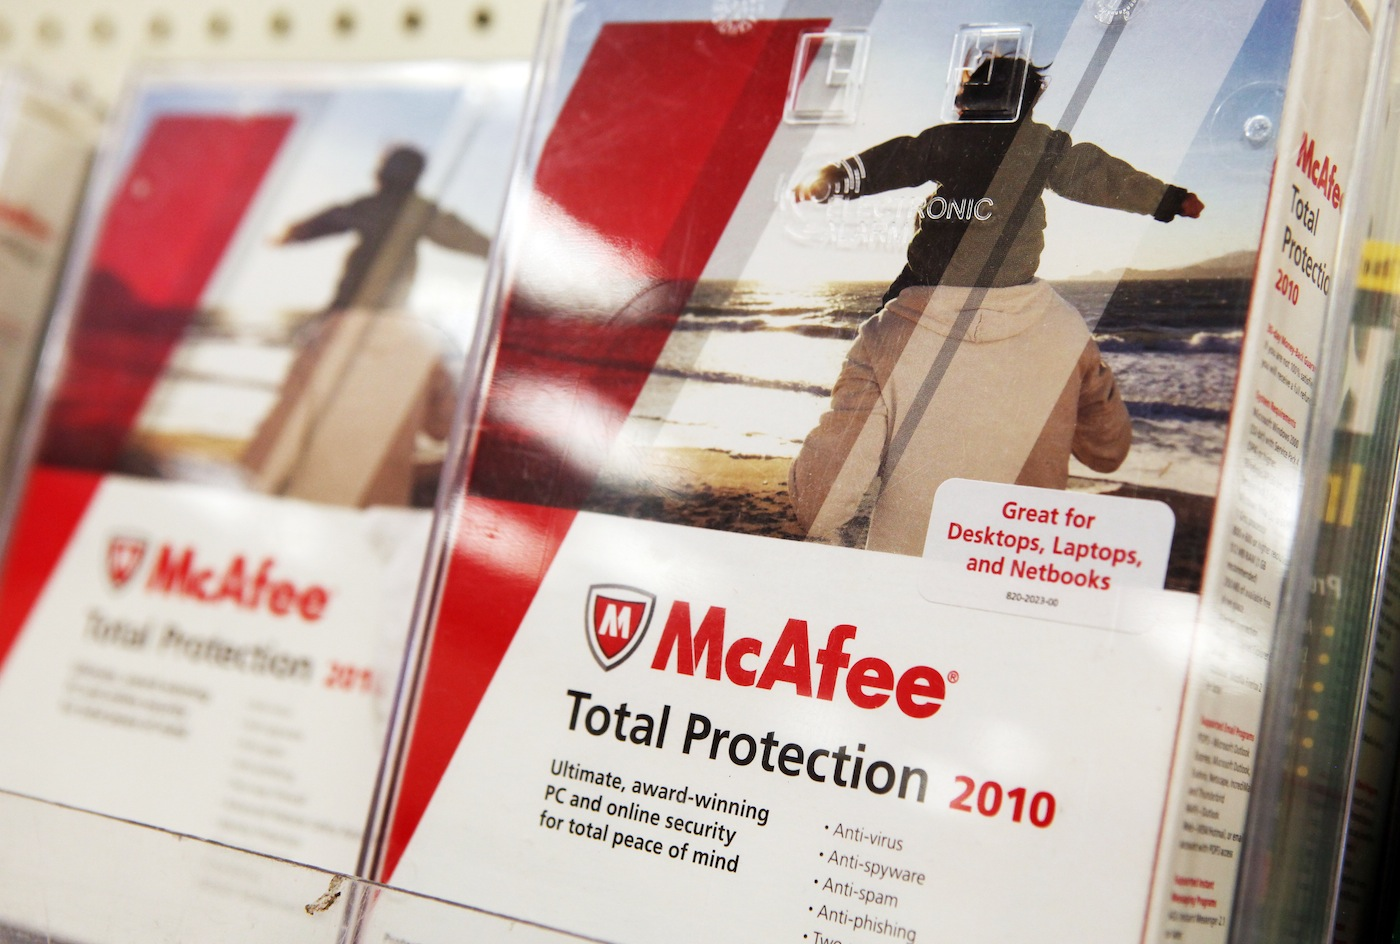 Source: McAfee held talks to buy Good Technology, deal blew up over price